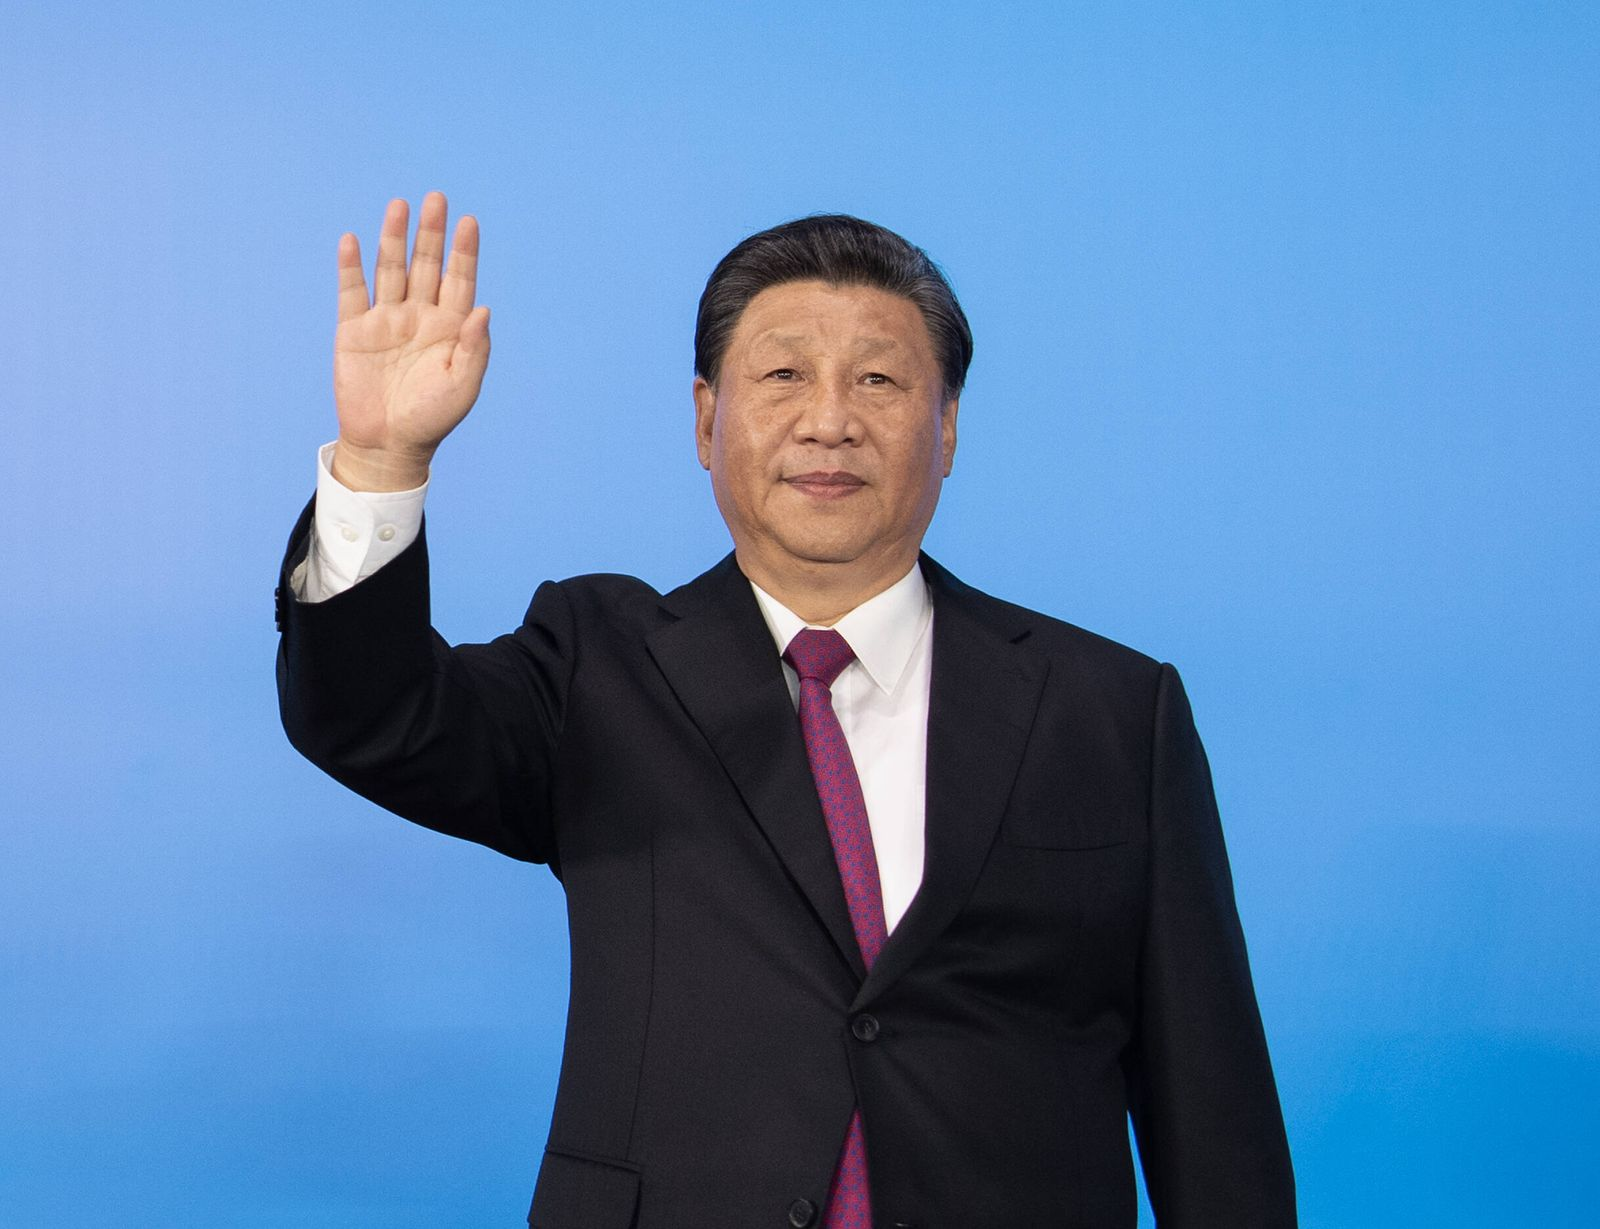 (210915) -- XI AN, Sept. 15, 2021 -- Chinese President Xi Jinping, also general secretary of the Communist Party of Chi